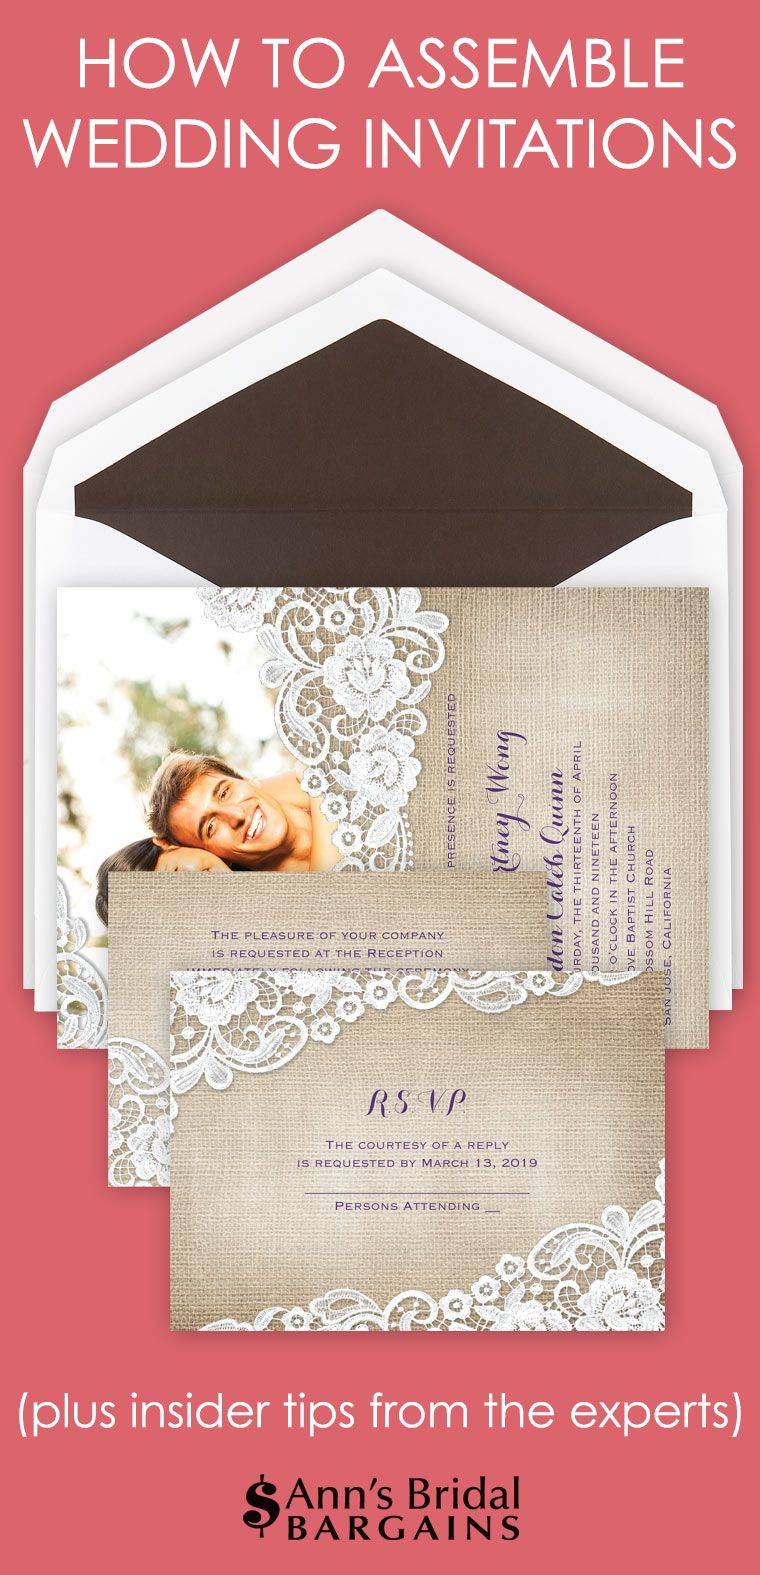 We Ve Put Together These Five Easy Steps And Diagram To Help You Properly Assemble You Wedding Invitations Wedding Invitations Diy Creative Wedding Invitations